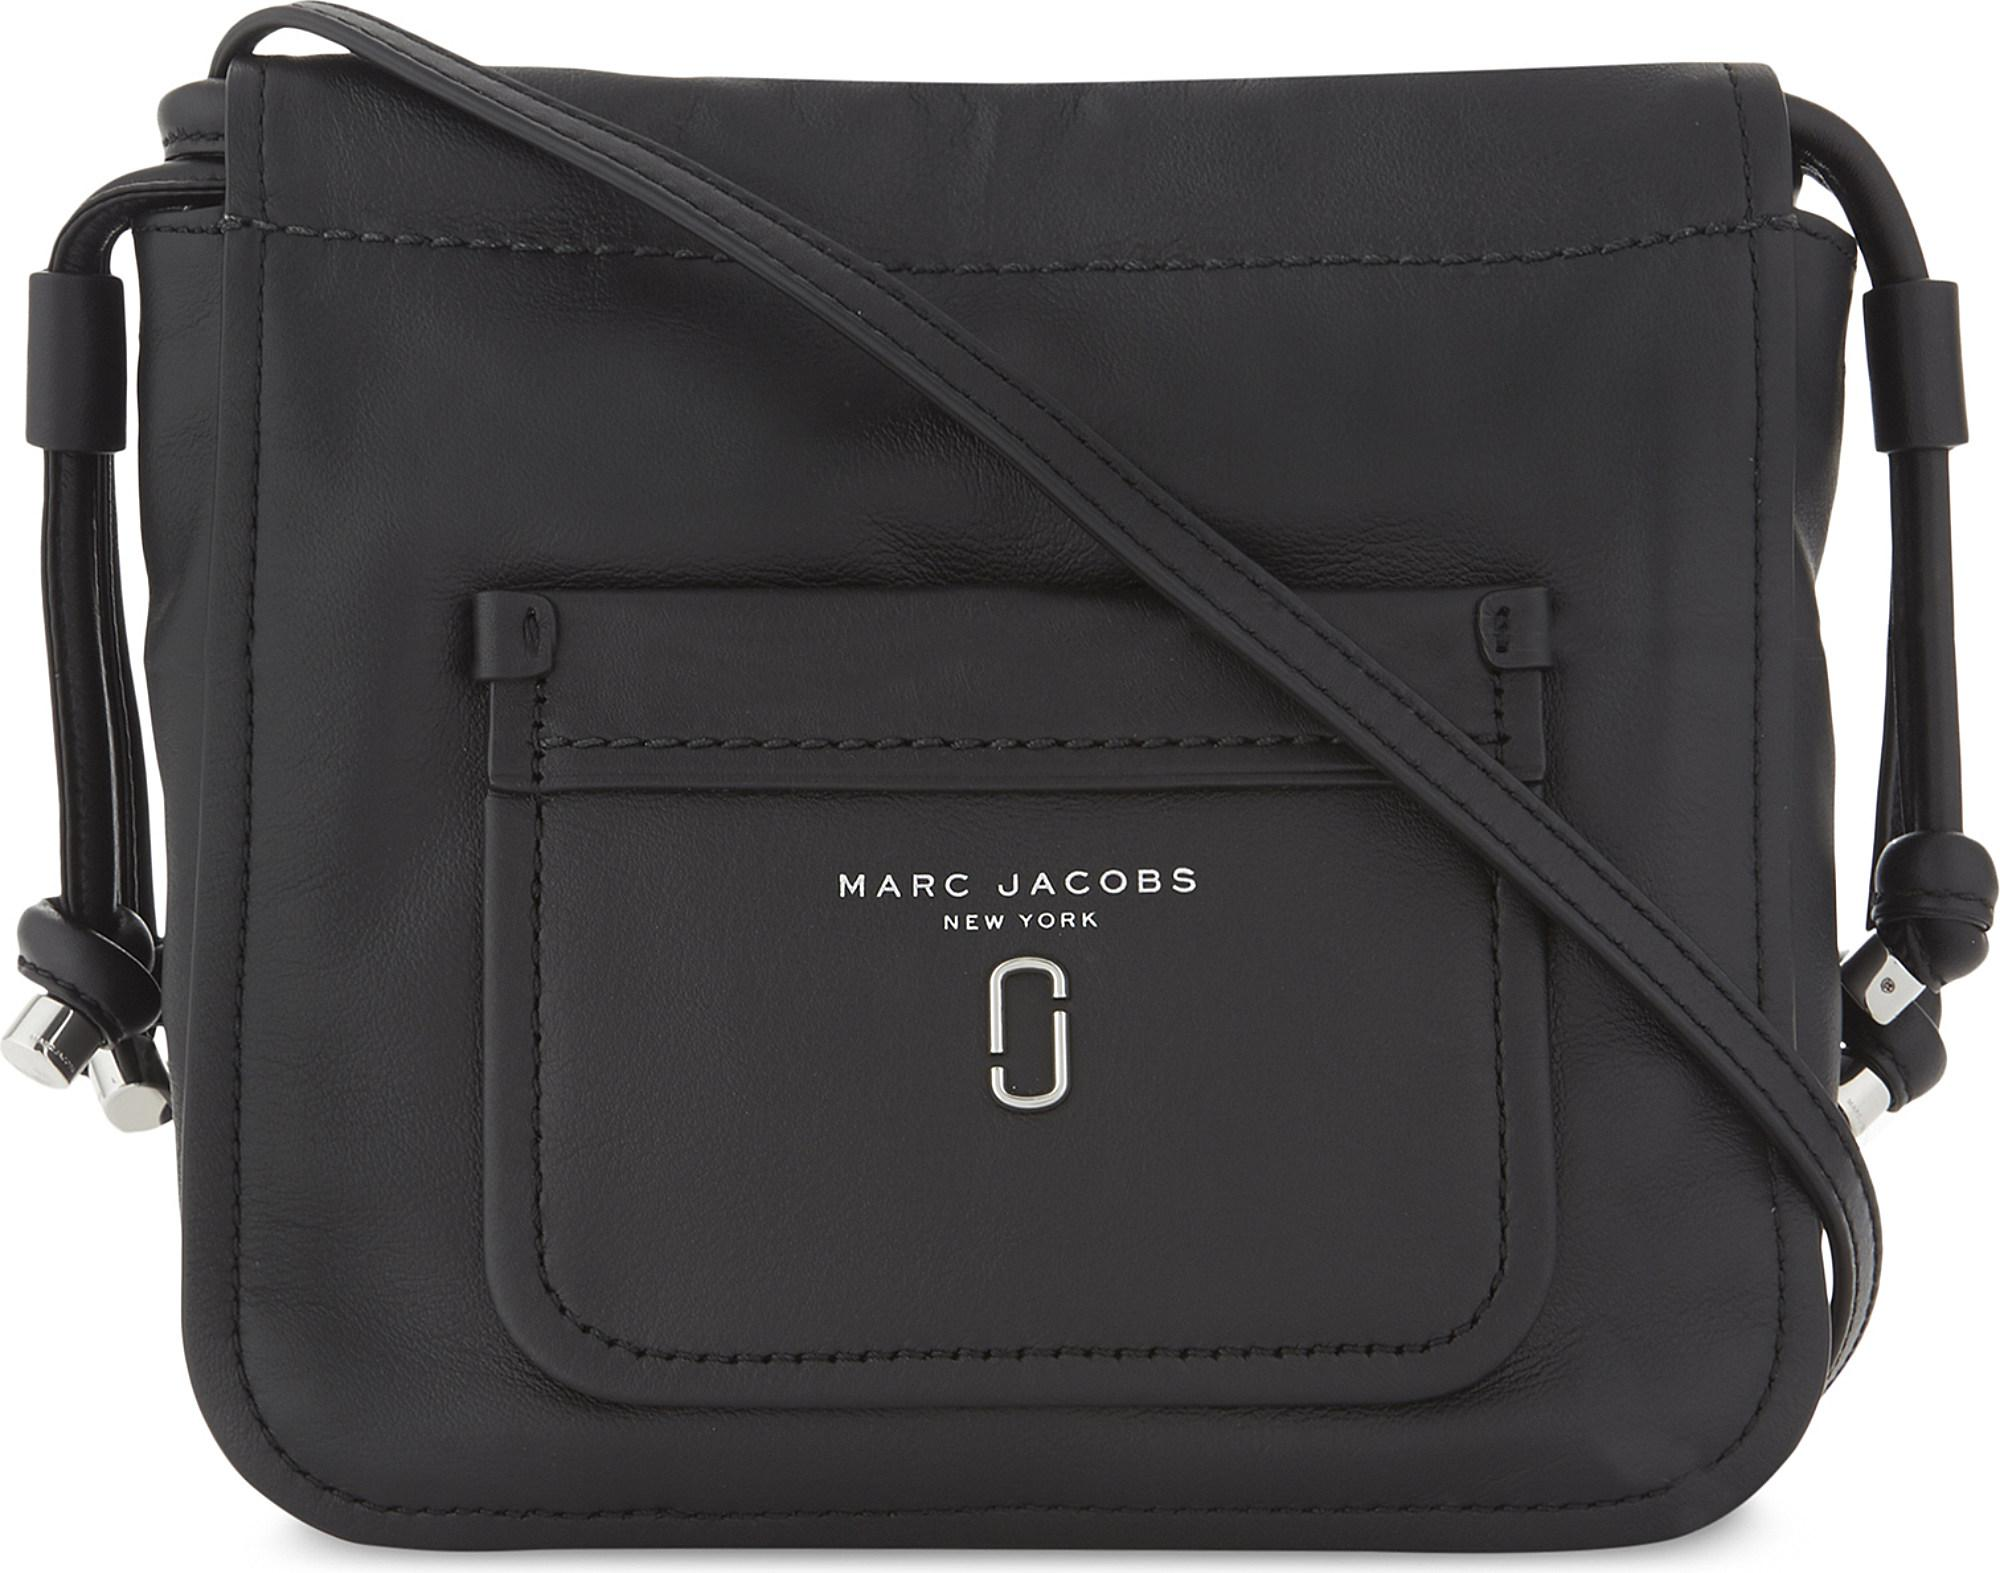 ef36487da3 Lyst - Marc Jacobs Tied Up Leather Cross-body Bag in Black